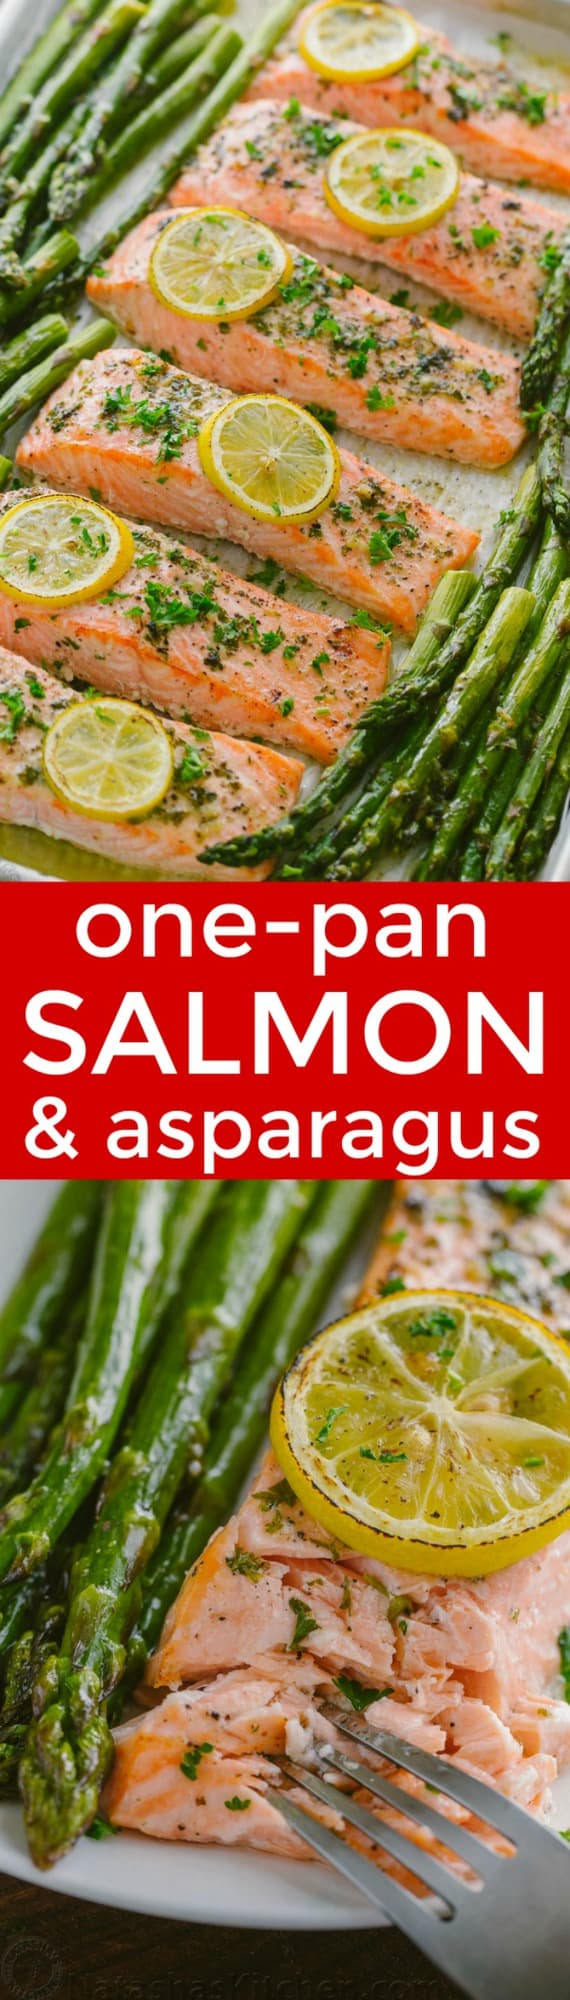 how to make salmon in a pan